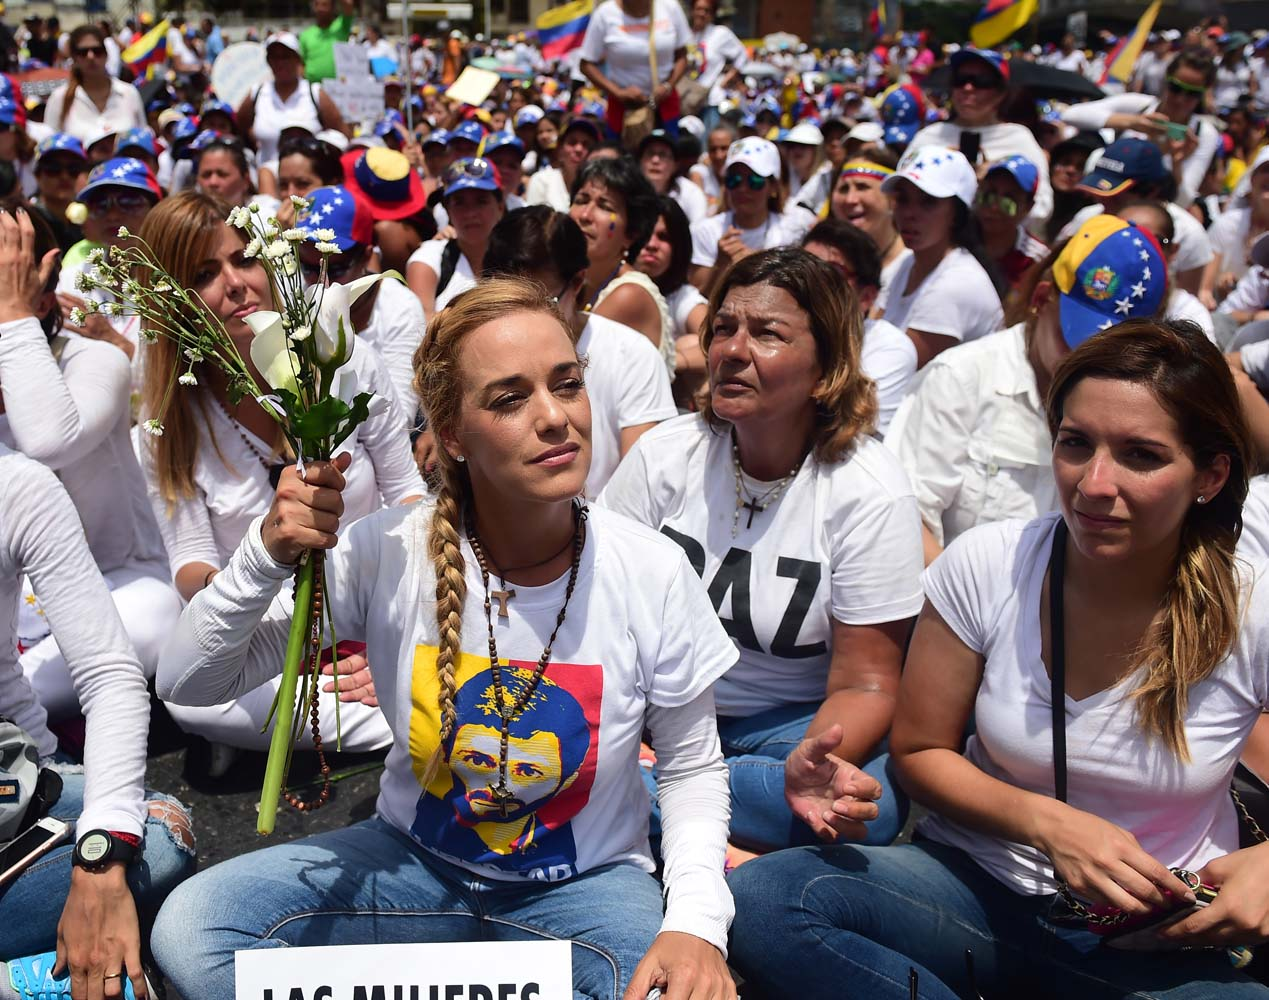 The wife of imprisoned opposition leader Leopoldo Lopez, Lilian Tintori (L), takes part in a women's march aimed to keep pressure on President Nicolas Maduro, whose authority is being increasingly challenged by protests and deadly unrest, in Caracas on May 6, 2017. The death toll since April, when the protests intensified after Maduro's administration and the courts stepped up efforts to undermine the opposition, is at least 36 according to prosecutors. / AFP PHOTO / RONALDO SCHEMIDT